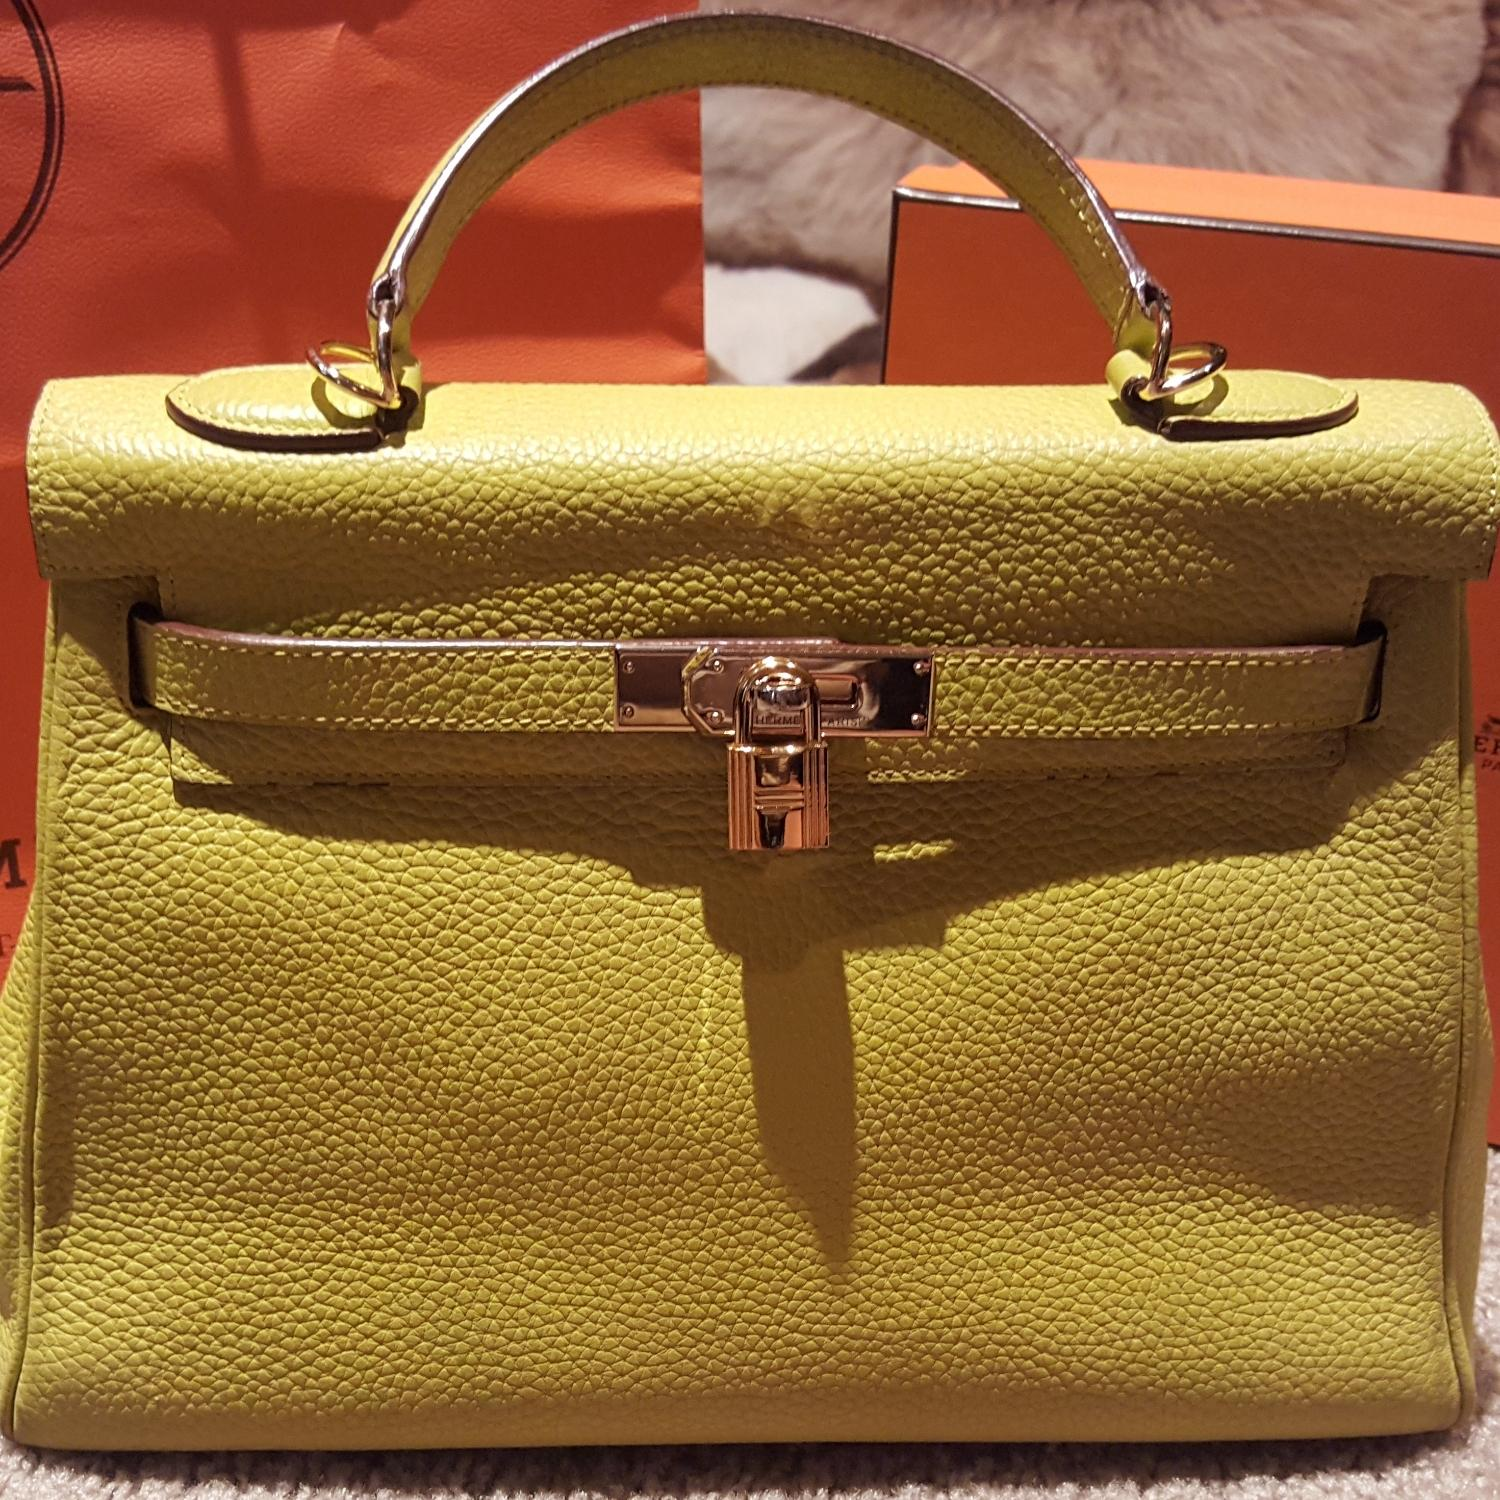 275b5e867b334 ... gold hardware 4644f ff8bf  greece hermès kelly clemence 32 retourne  lime yellow buffalo sindhu leather satchel tradesy a3340 67df5